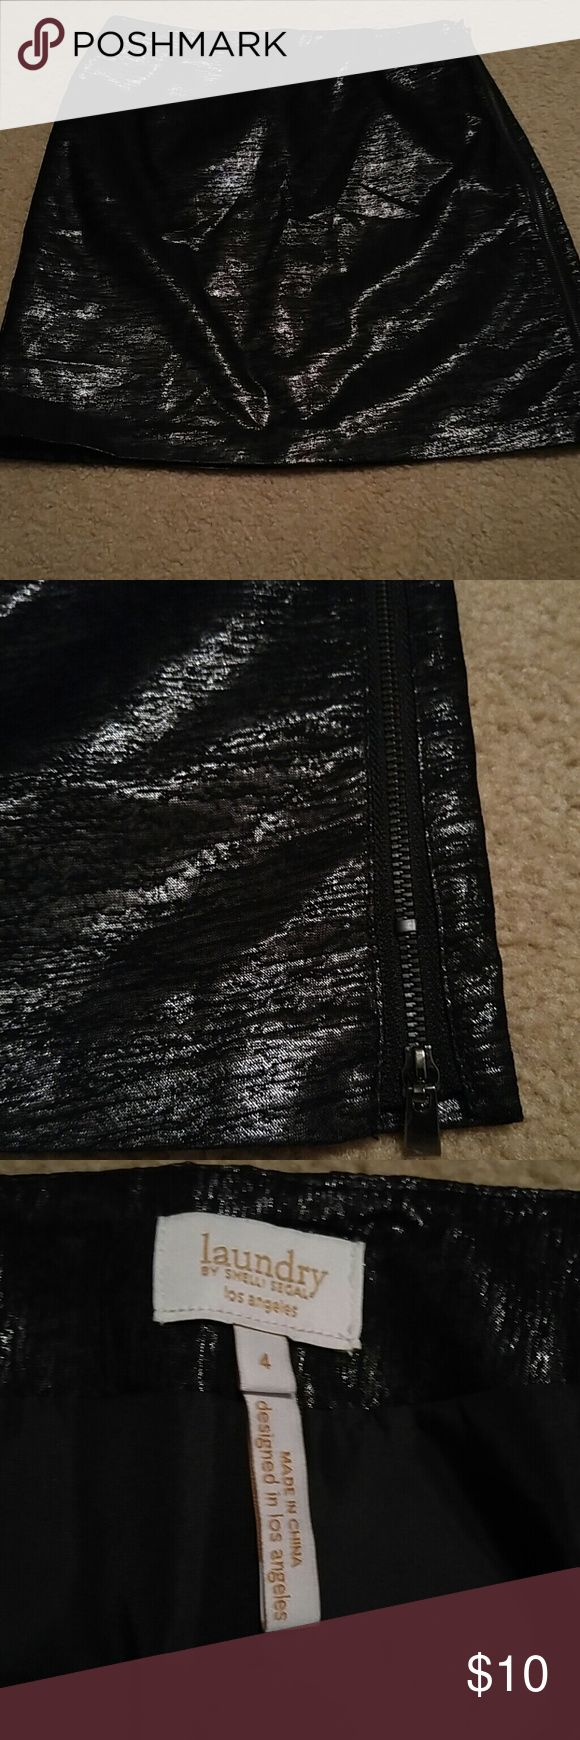 Laundry Shelli Segal Black Metallic Mini Skirt 4 Laundry by Shelli Segal Black Metallic Mini Skirt. Size 4. Polyester. Zips all the way down the left side. Excellent shape!! Laundry by Shelli Segal Skirts Mini